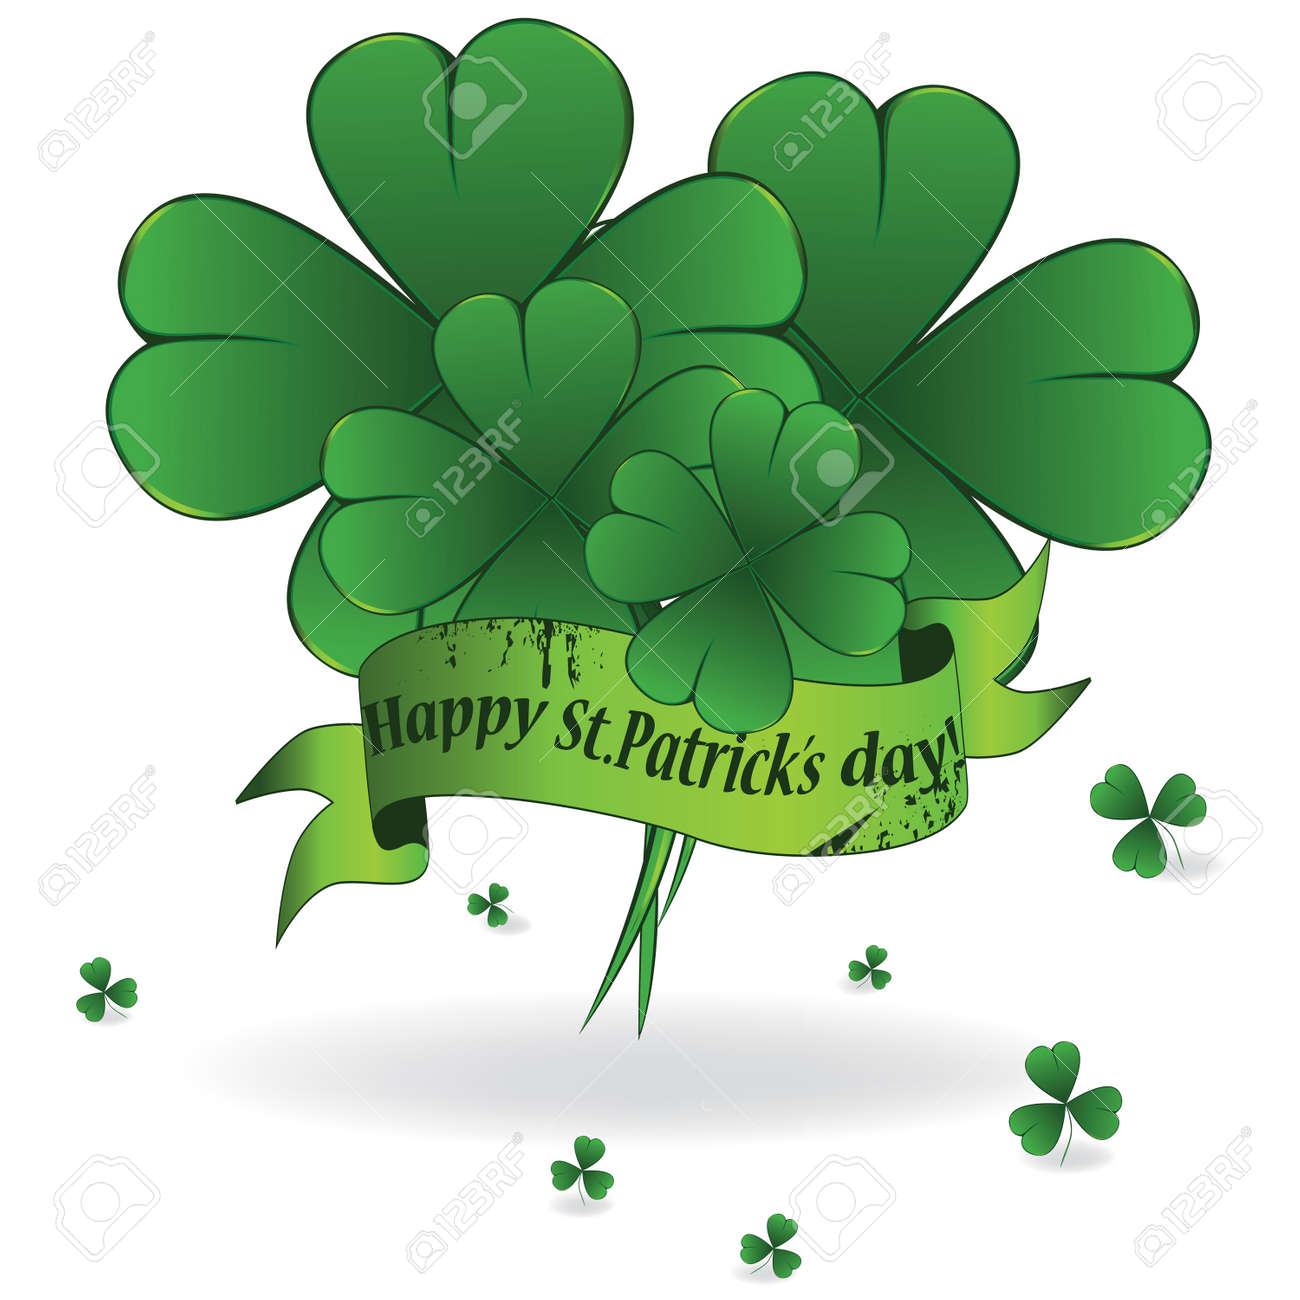 Background to St. Patrick's Day with clover and ribbon, element for design Stock Vector - 8710943